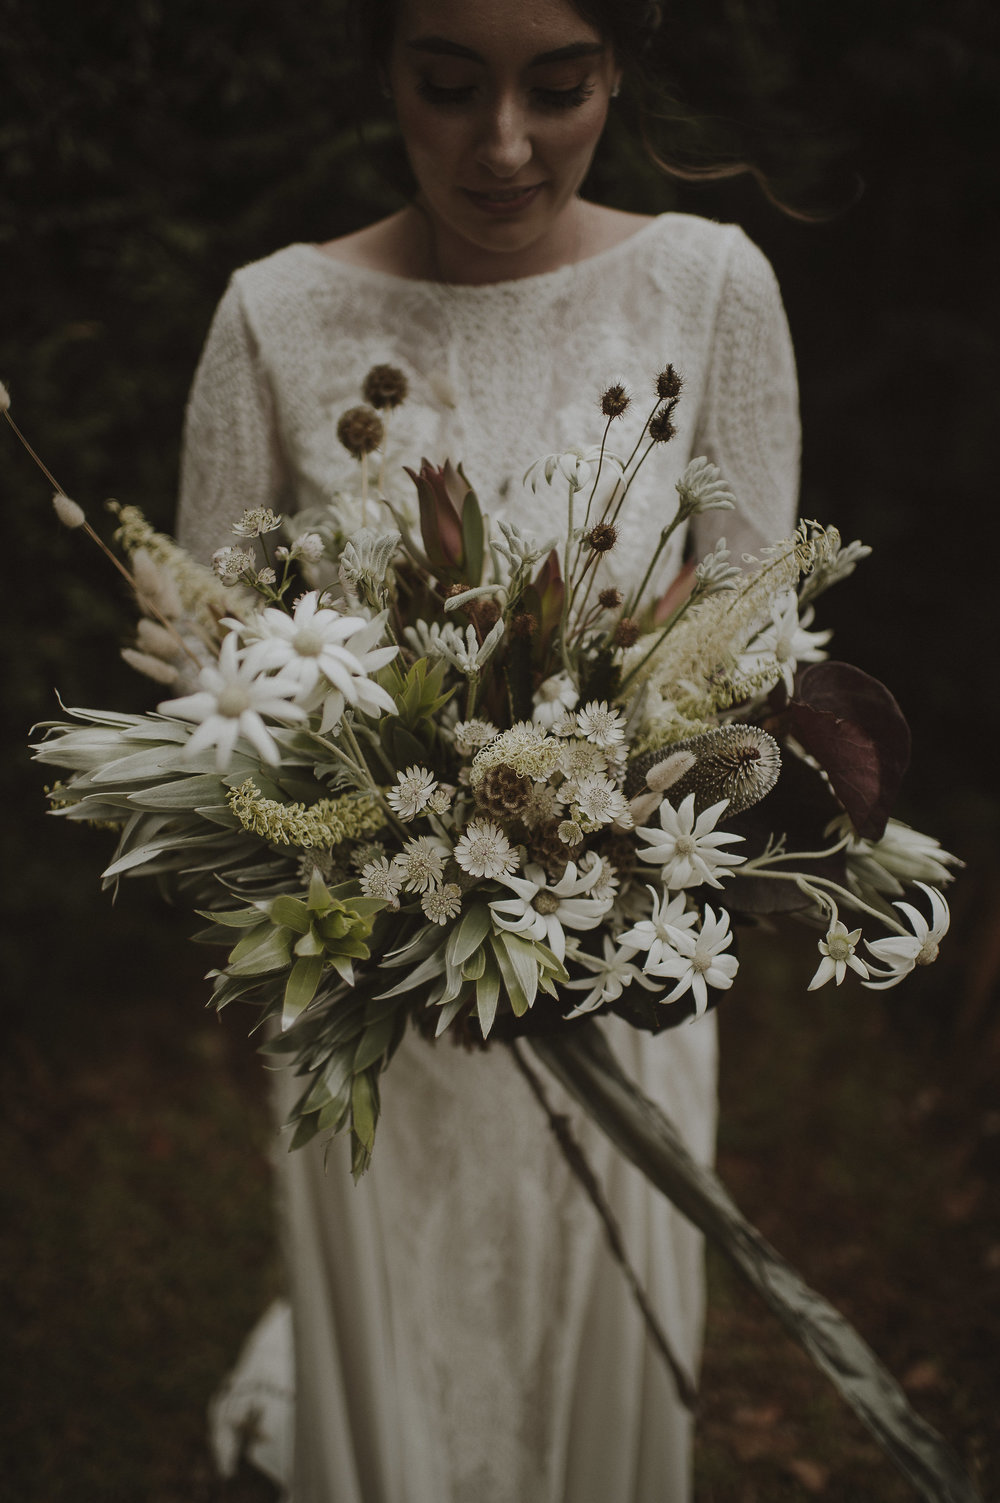 There are a million other dainty white flowers which have the bonus of being seasonal, local, natural and unique without breaking the budget.